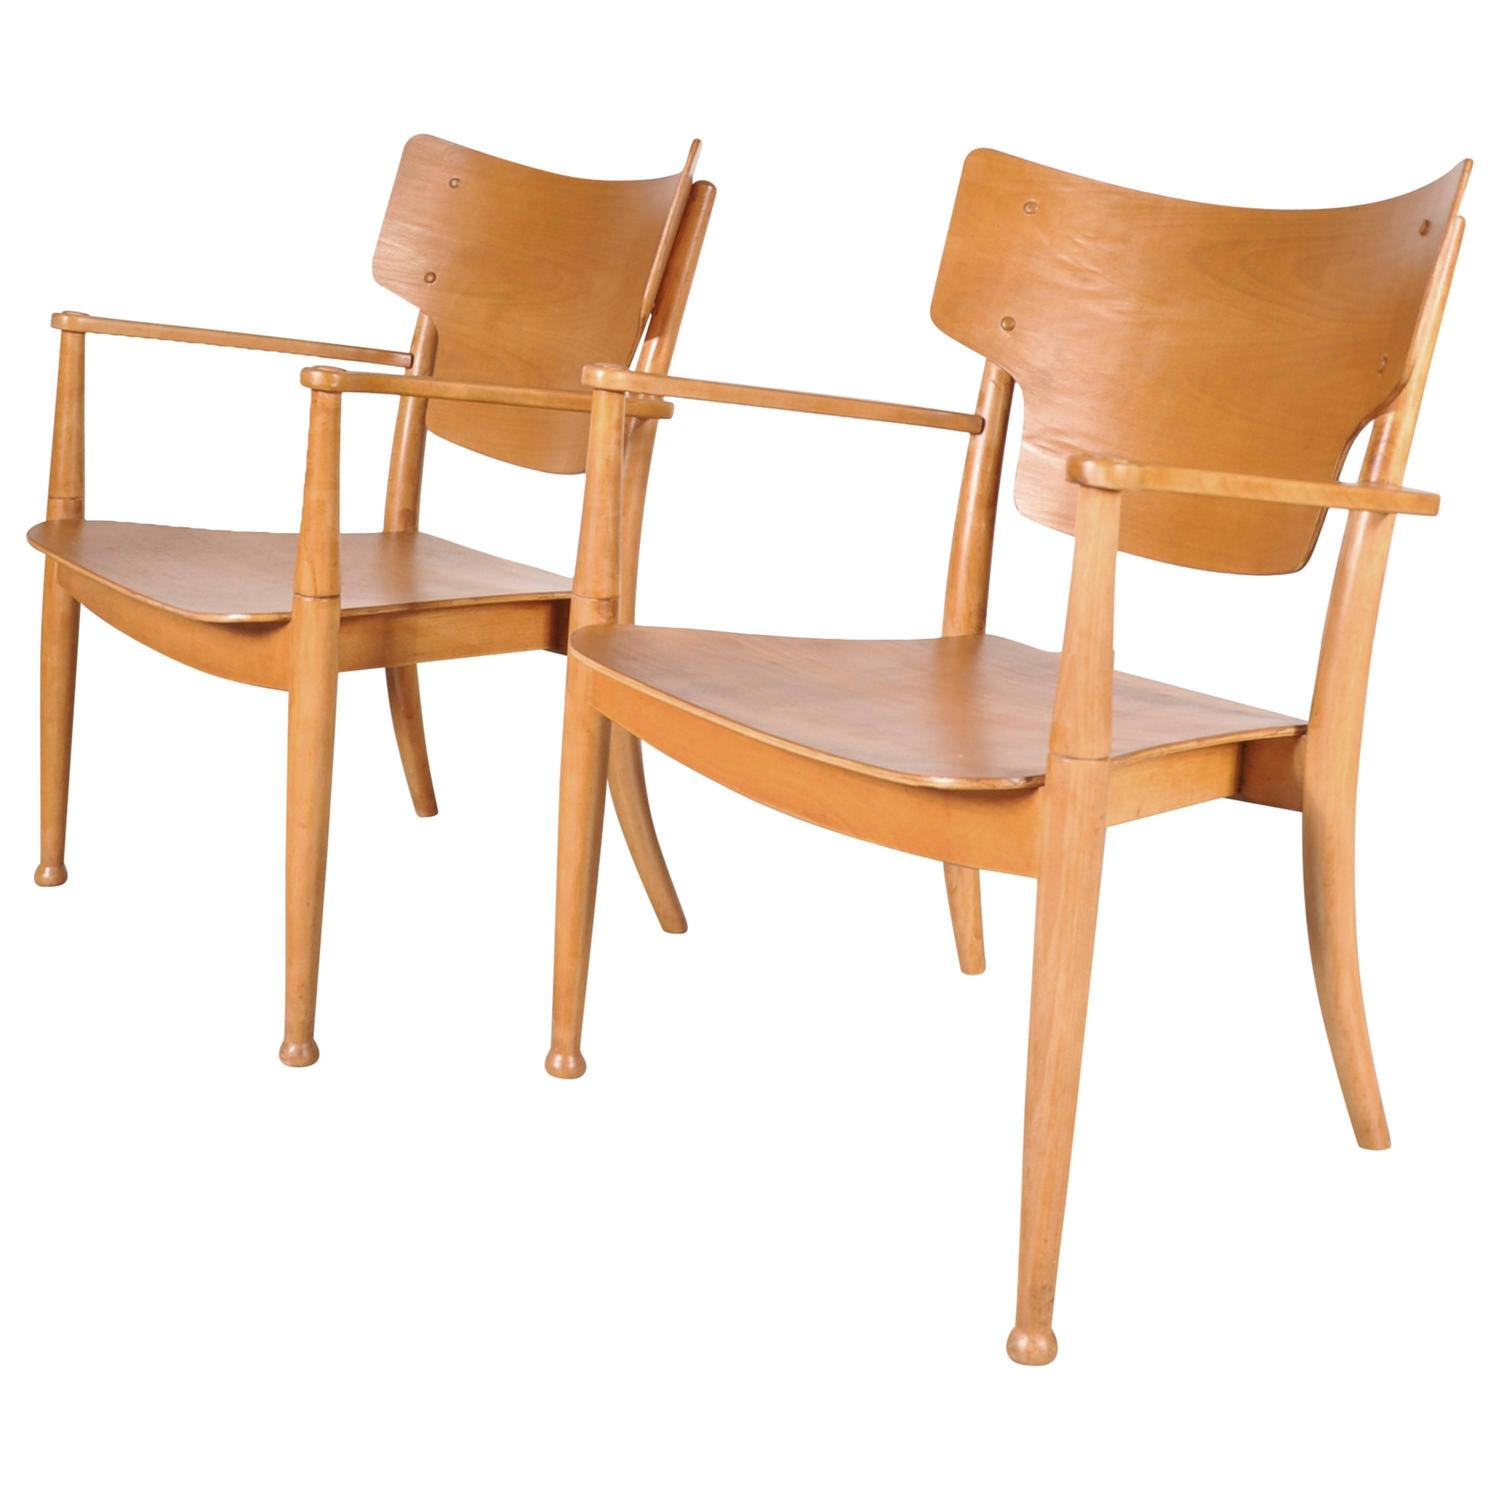 2 Portex Easy Chairs by Peter Hvidt and Orla Molgaard-Nielsen circa 1940 For Sale at 1stdibs  sc 1 st  1stDibs & 2 Portex Easy Chairs by Peter Hvidt and Orla Molgaard-Nielsen circa ...